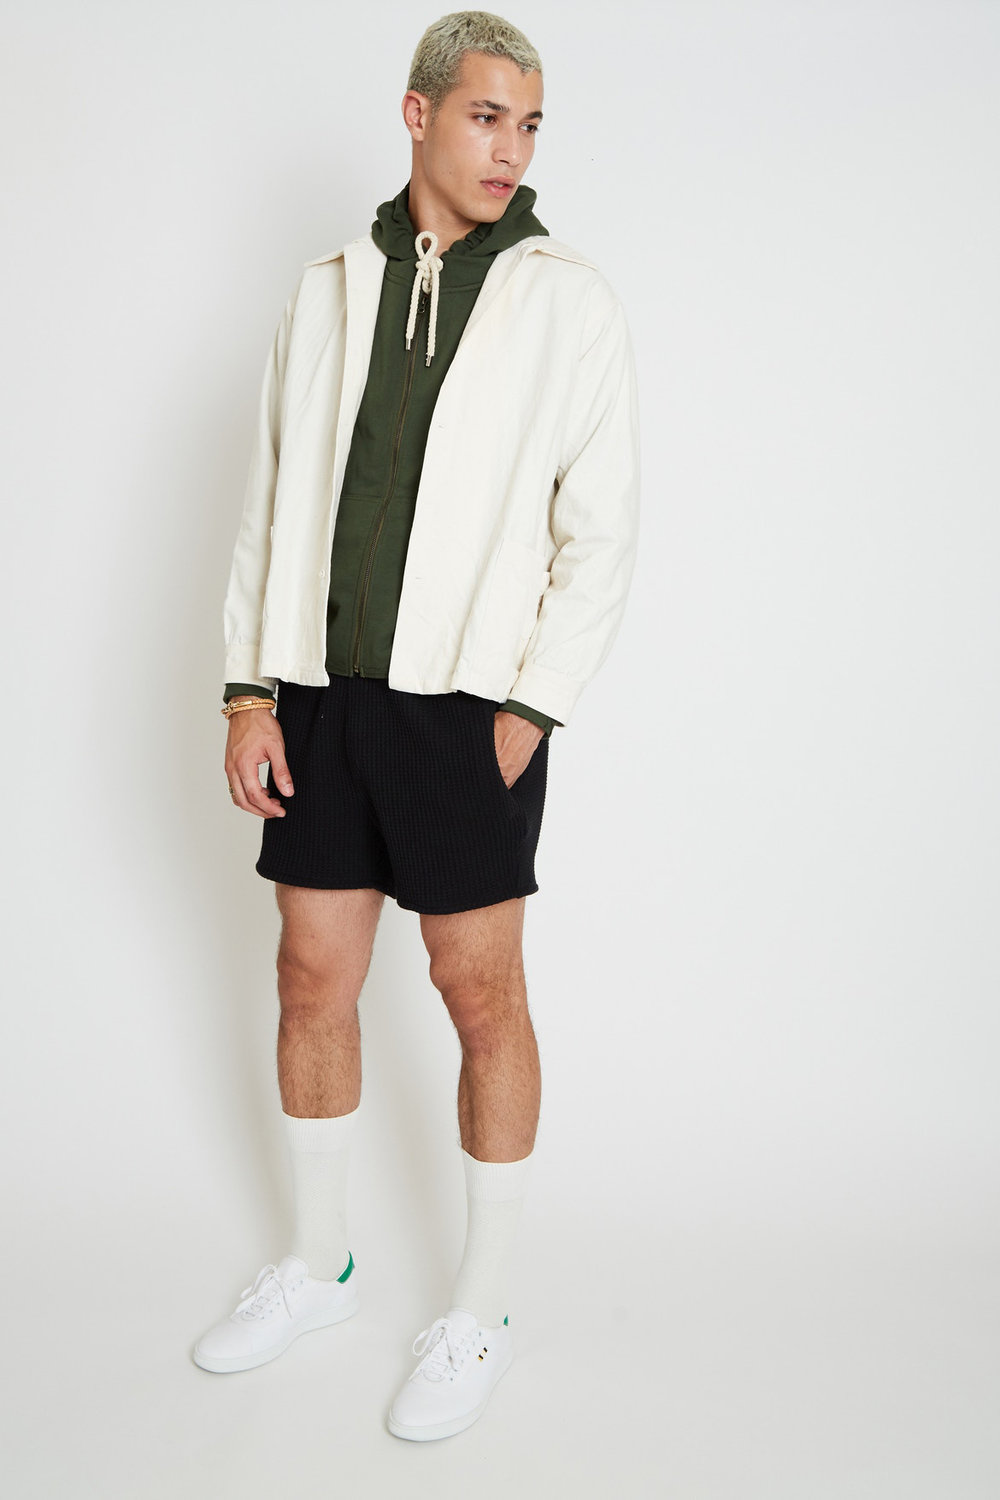 http---hypebeast.com-image-2017-07-death-to-tennis-2018-spring-summer-collection-12.jpg